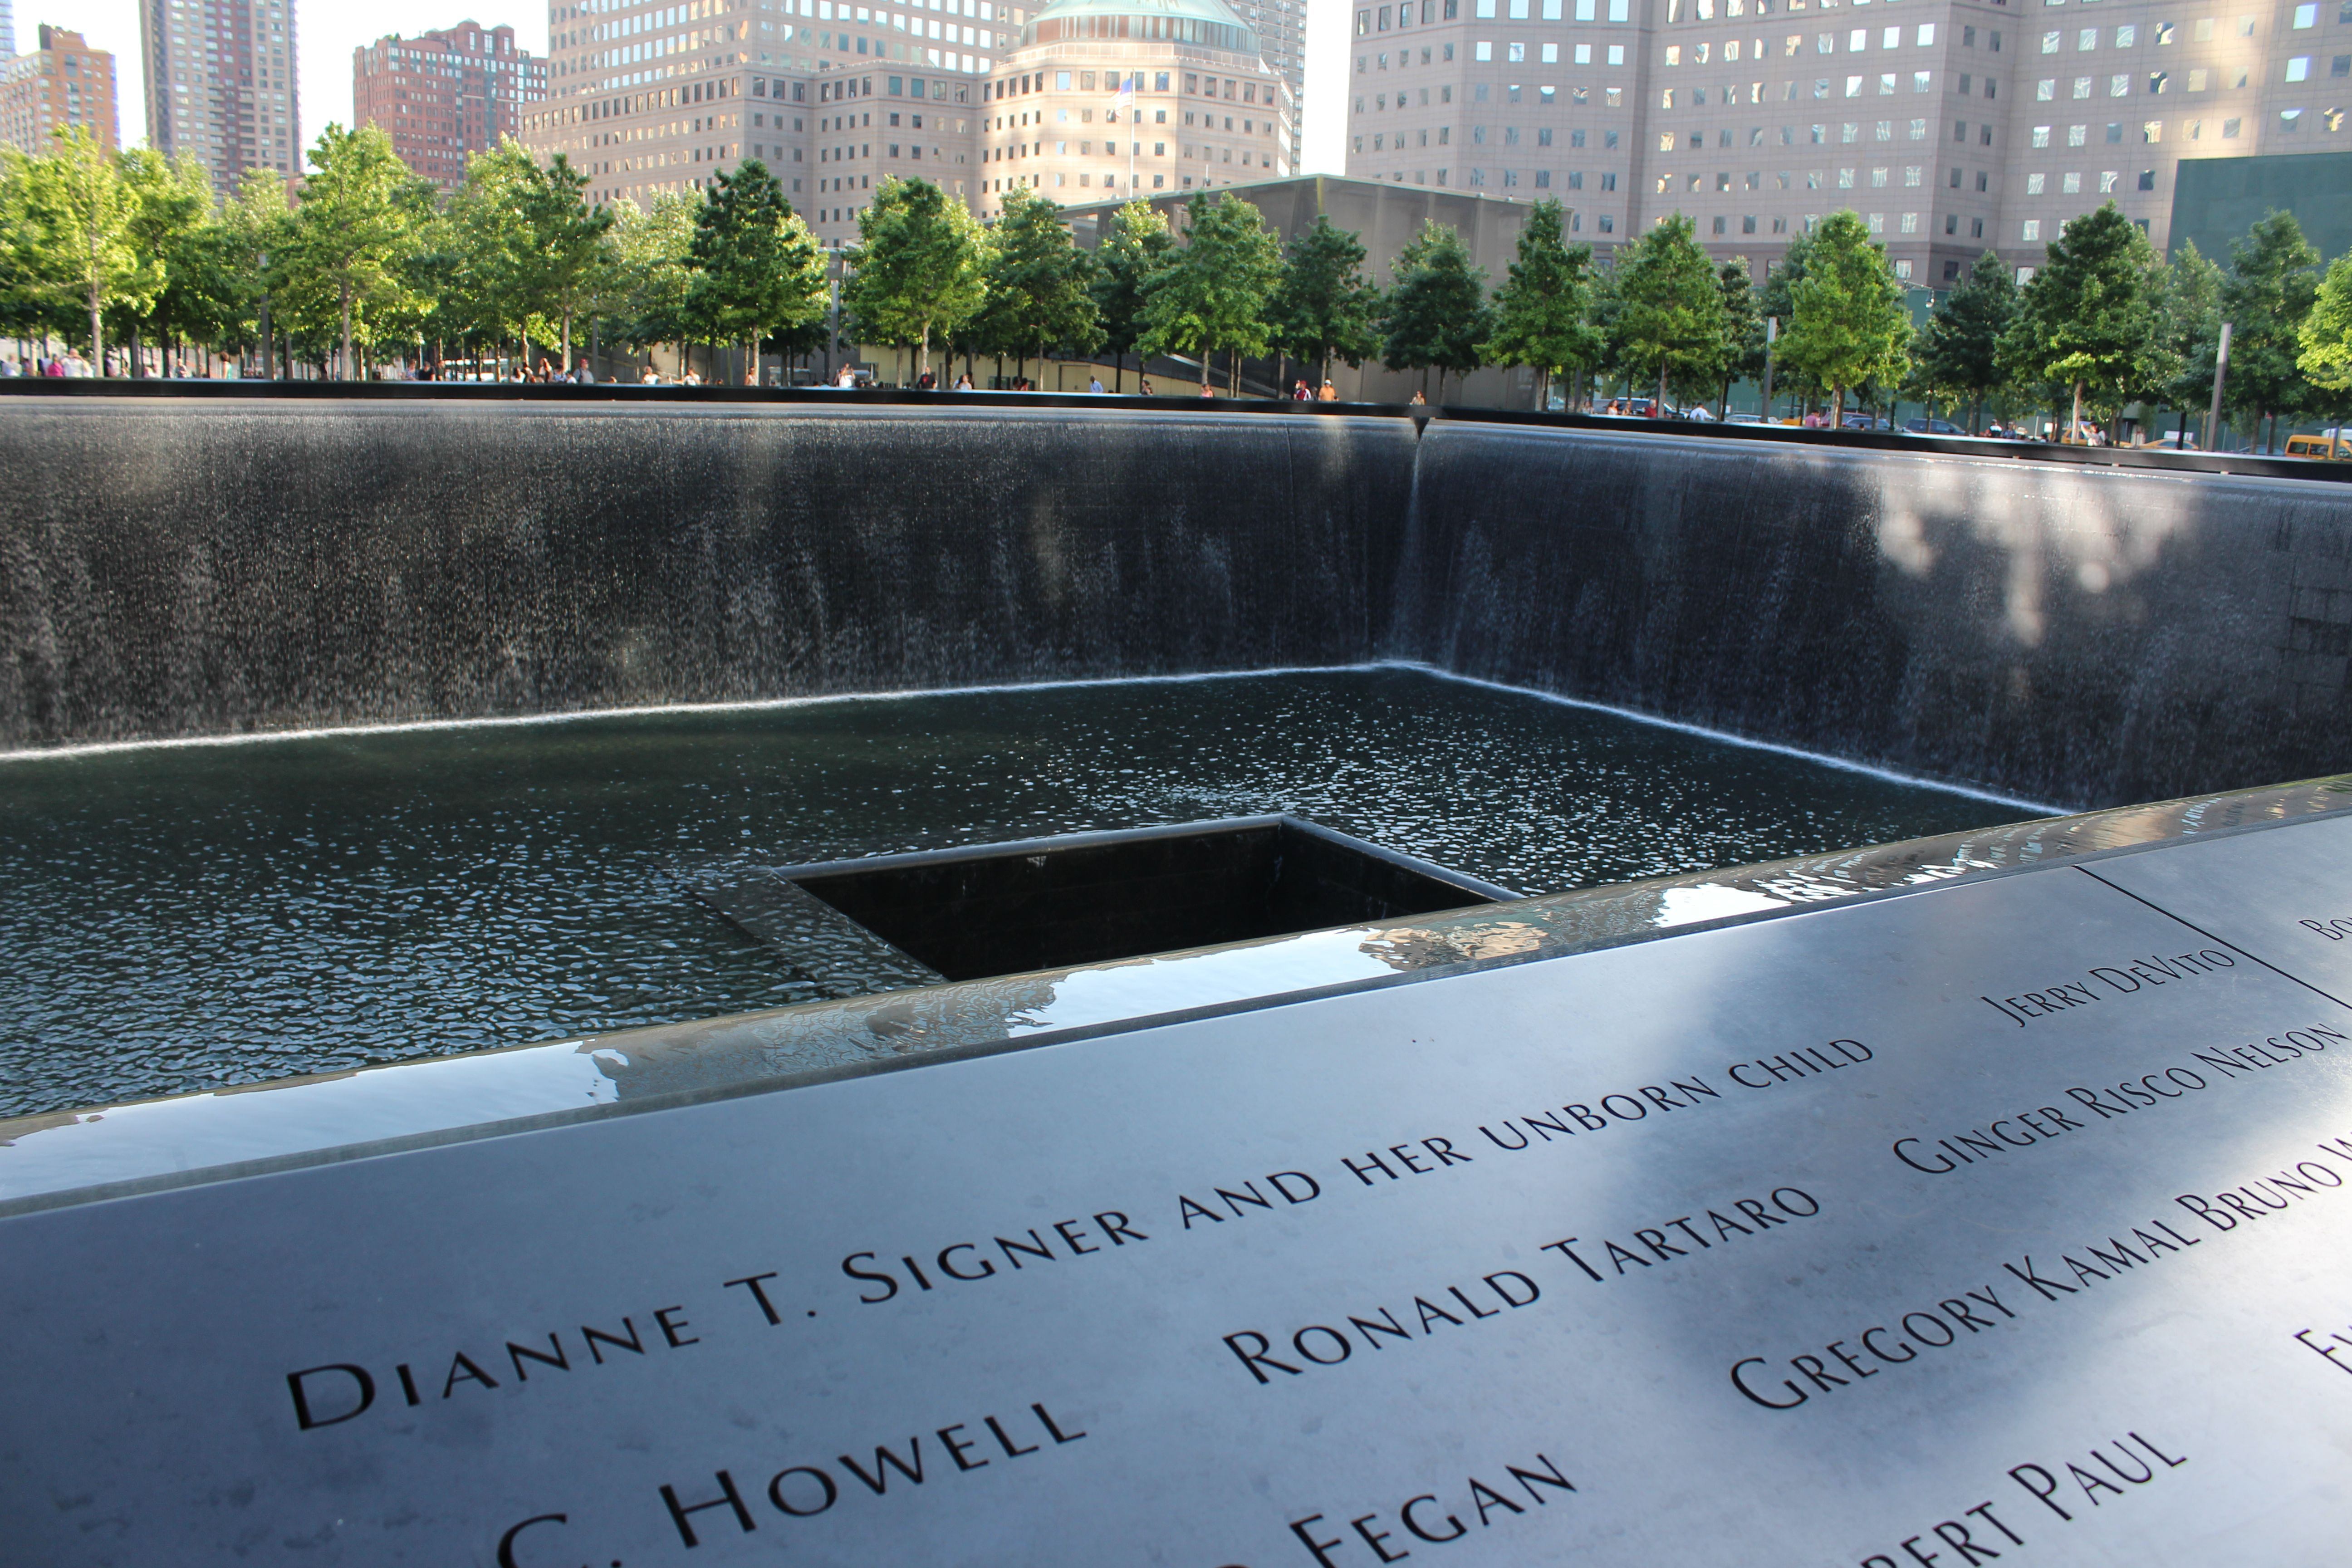 Honoring The Prenatal Children Who Perished On September 11